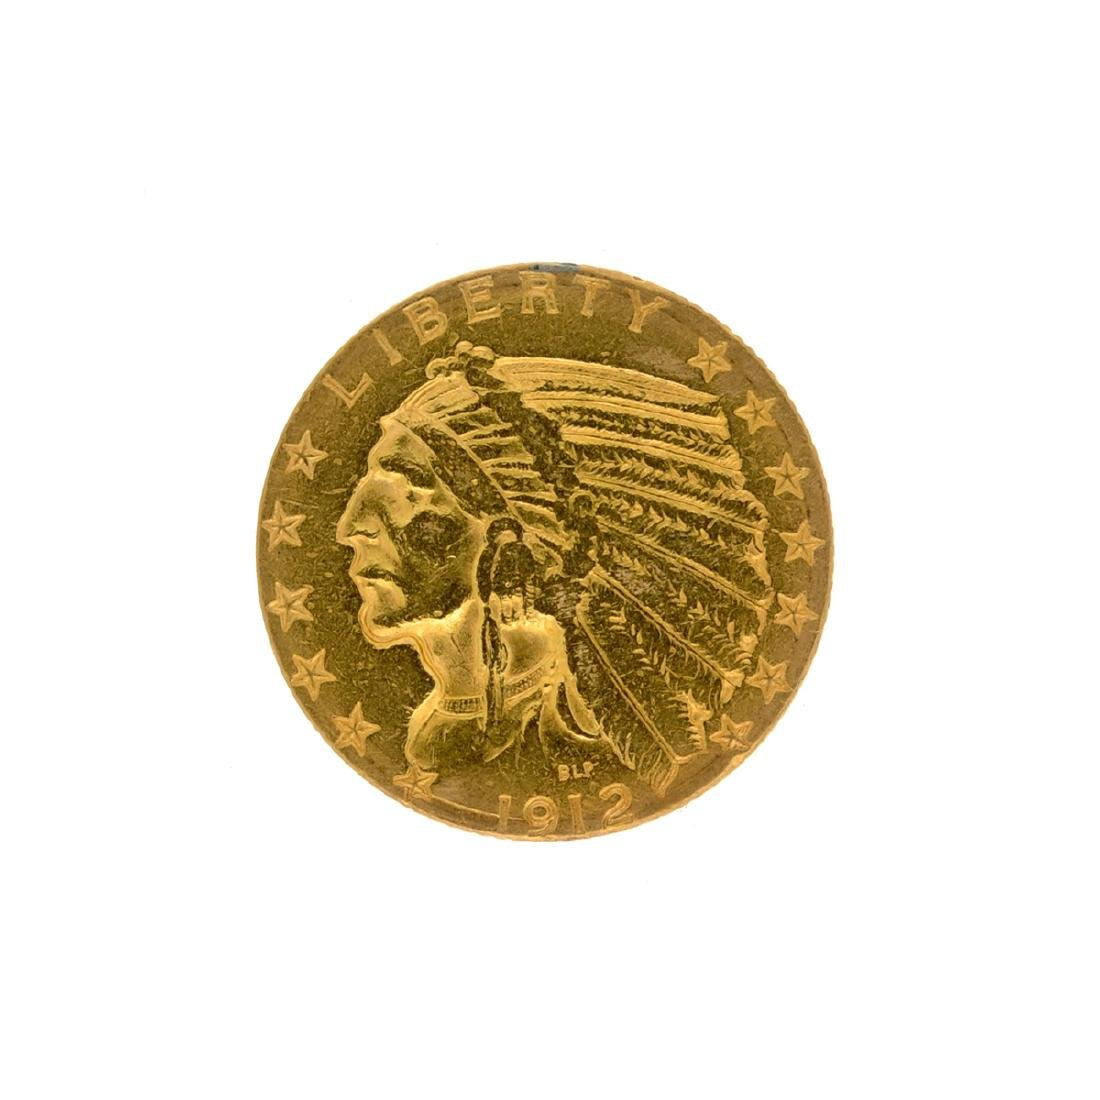 1912-S $5 U.S. Indian Head Gold Coin